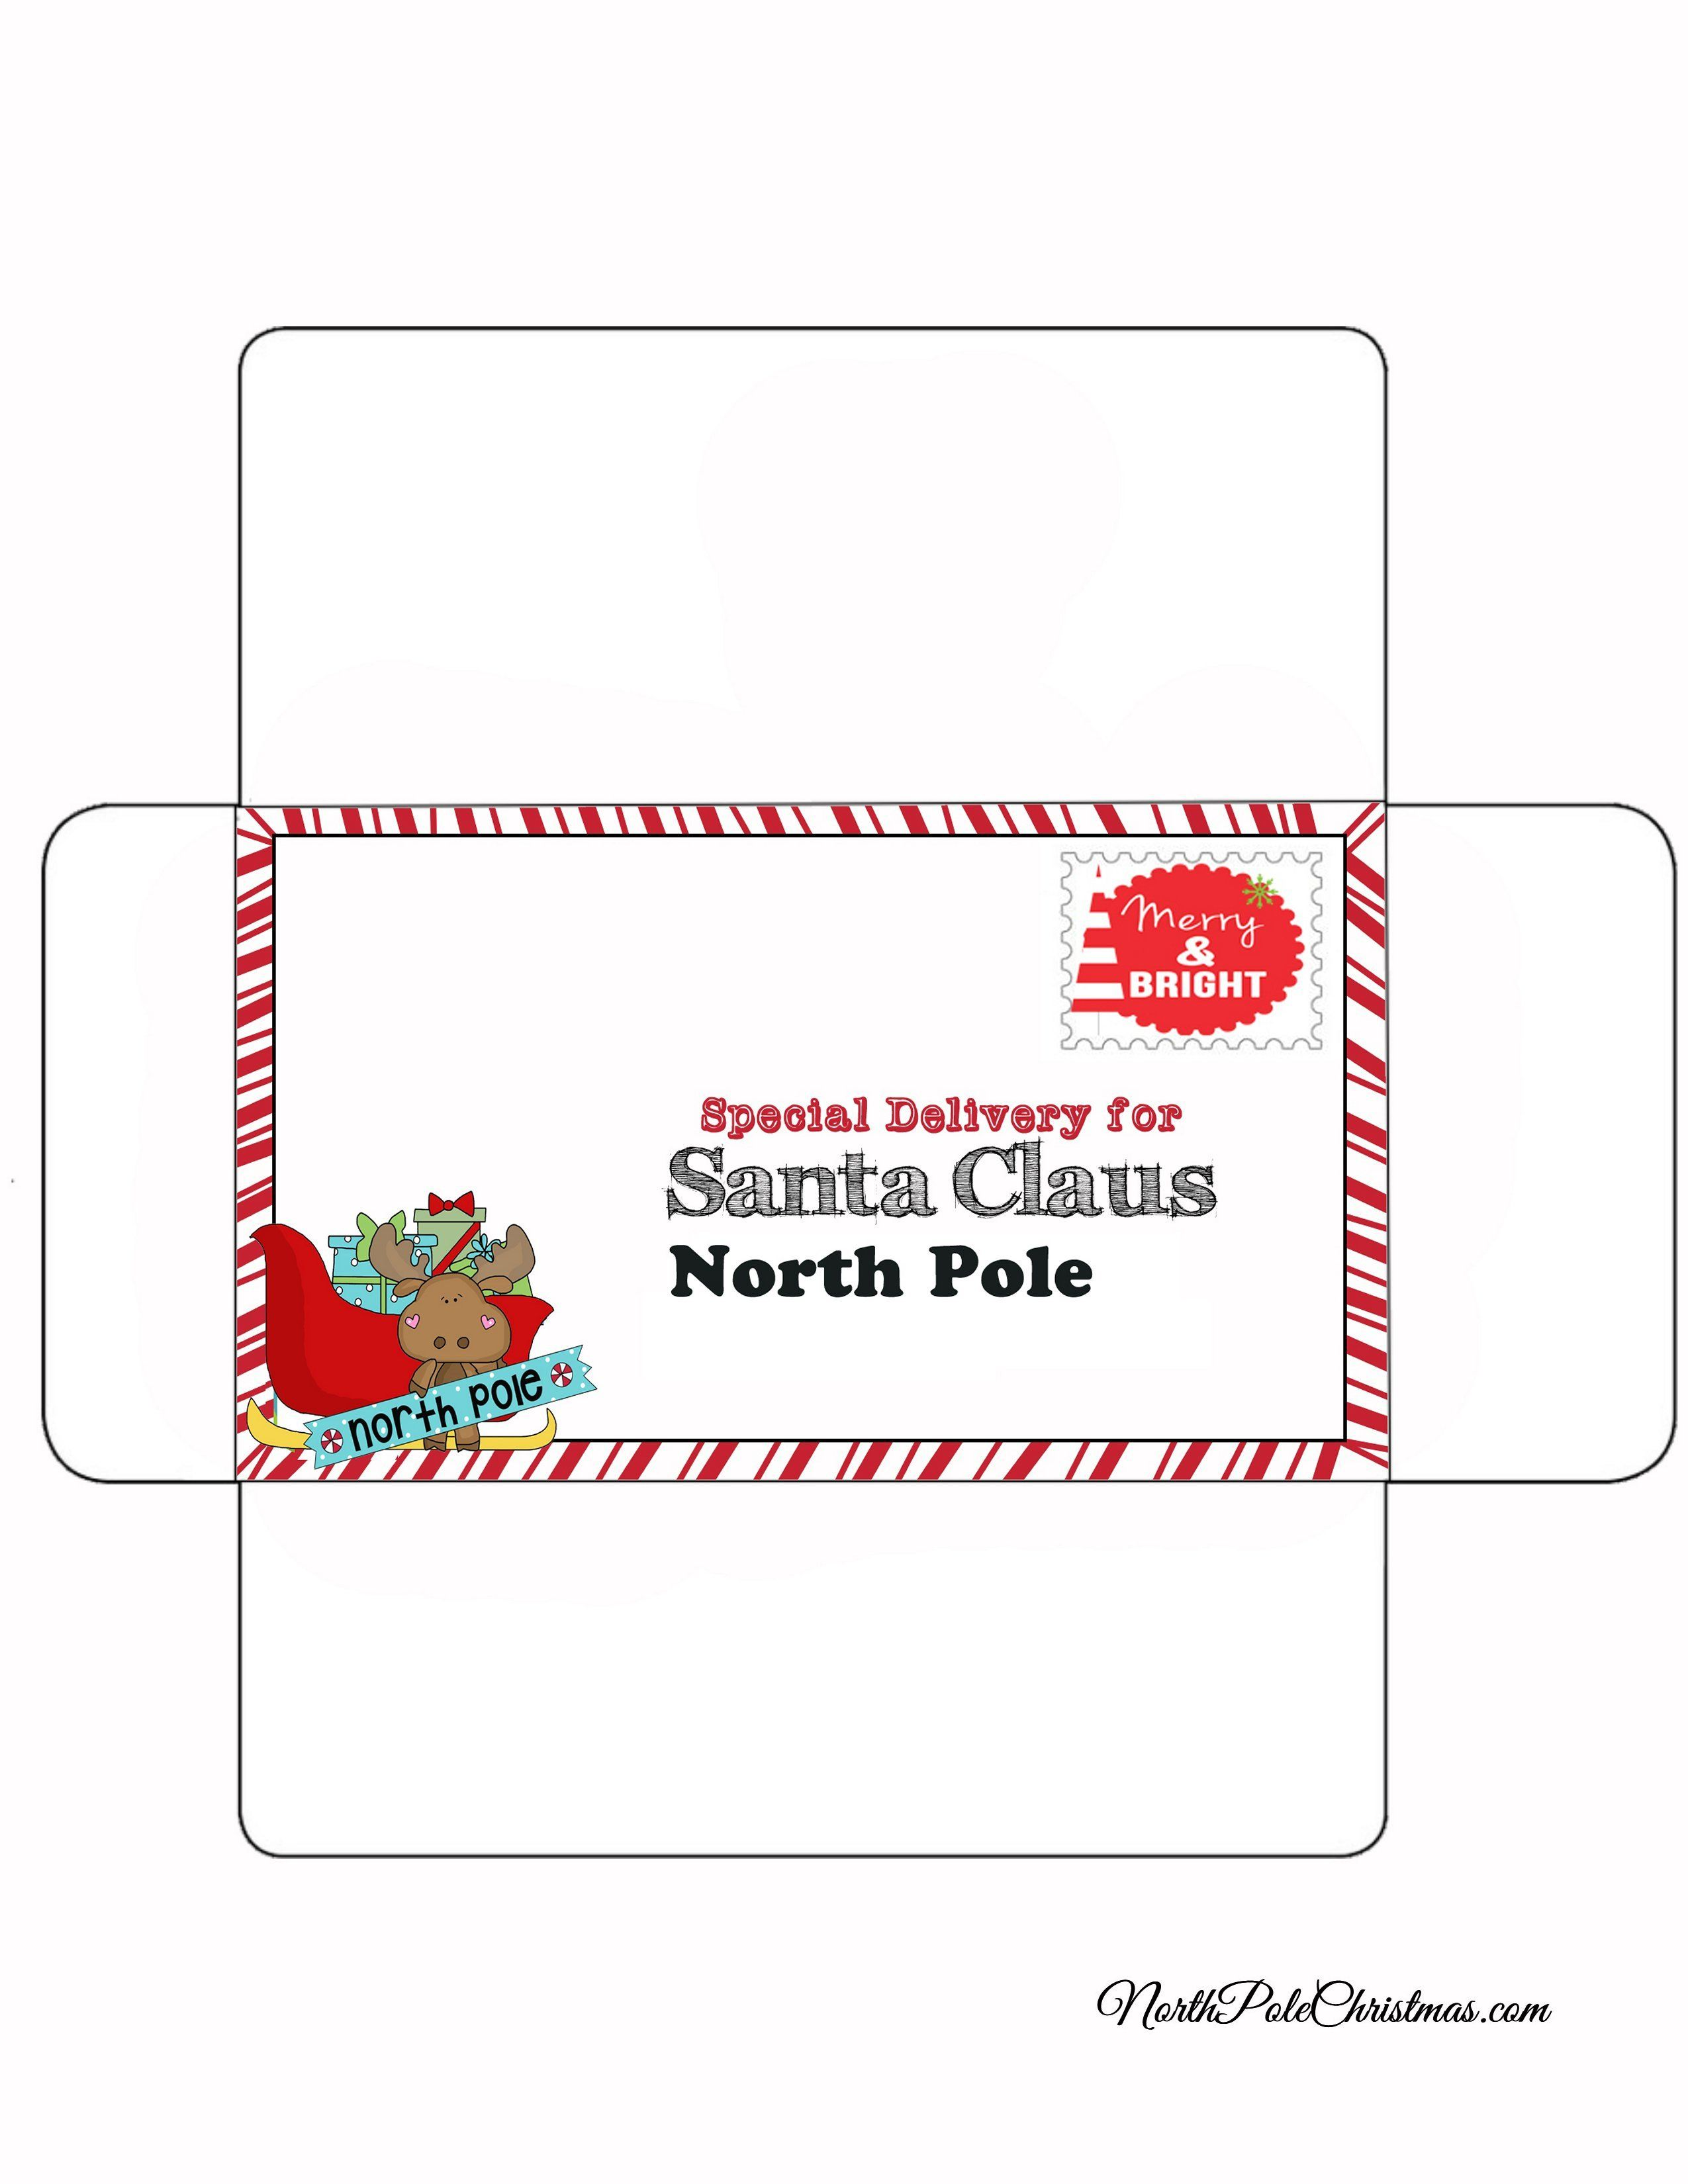 Rthpolechristmas Letters To Santa